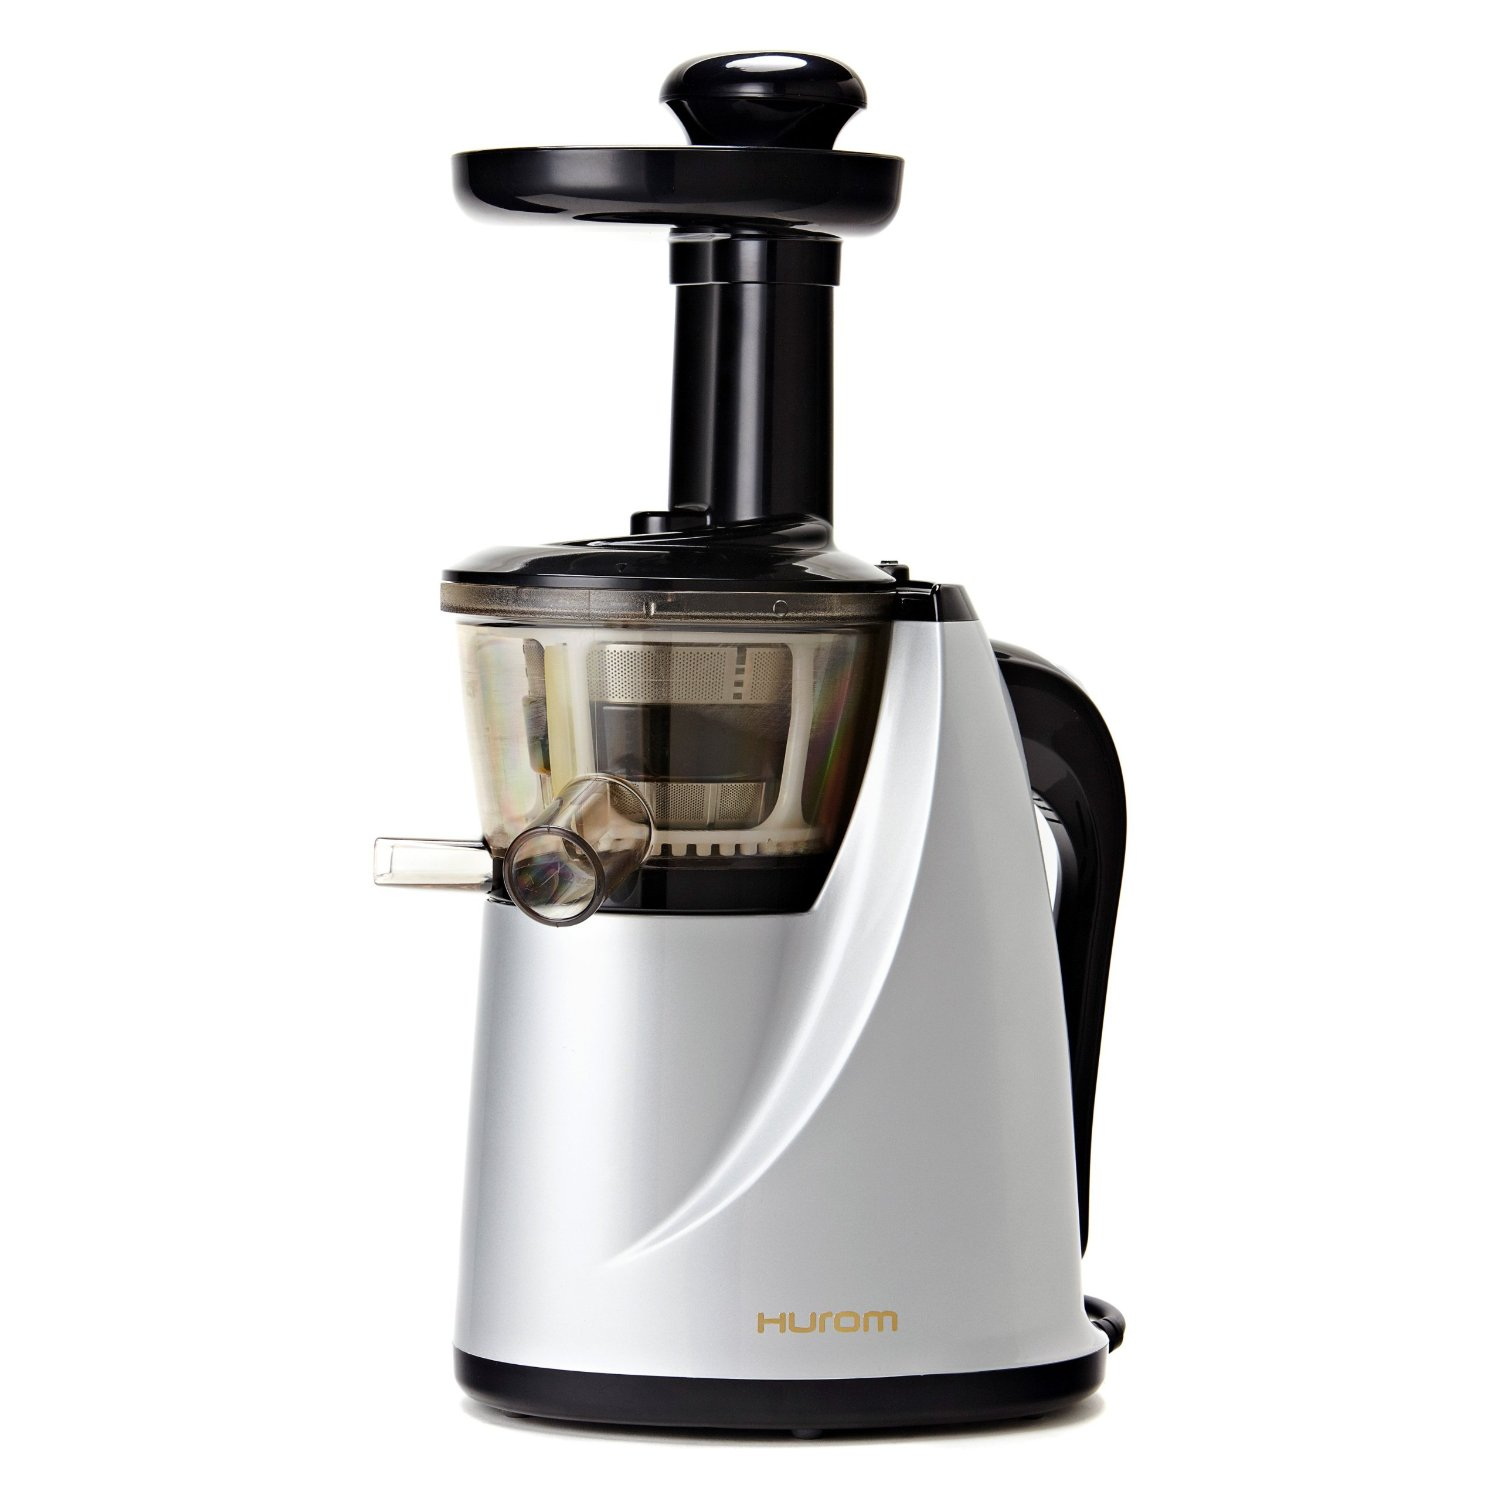 Hurom Slow Juicer Hu 600wn Review : Hurom HU-100 Masticating Slow Juicer Review - Best Cold Press Juicers